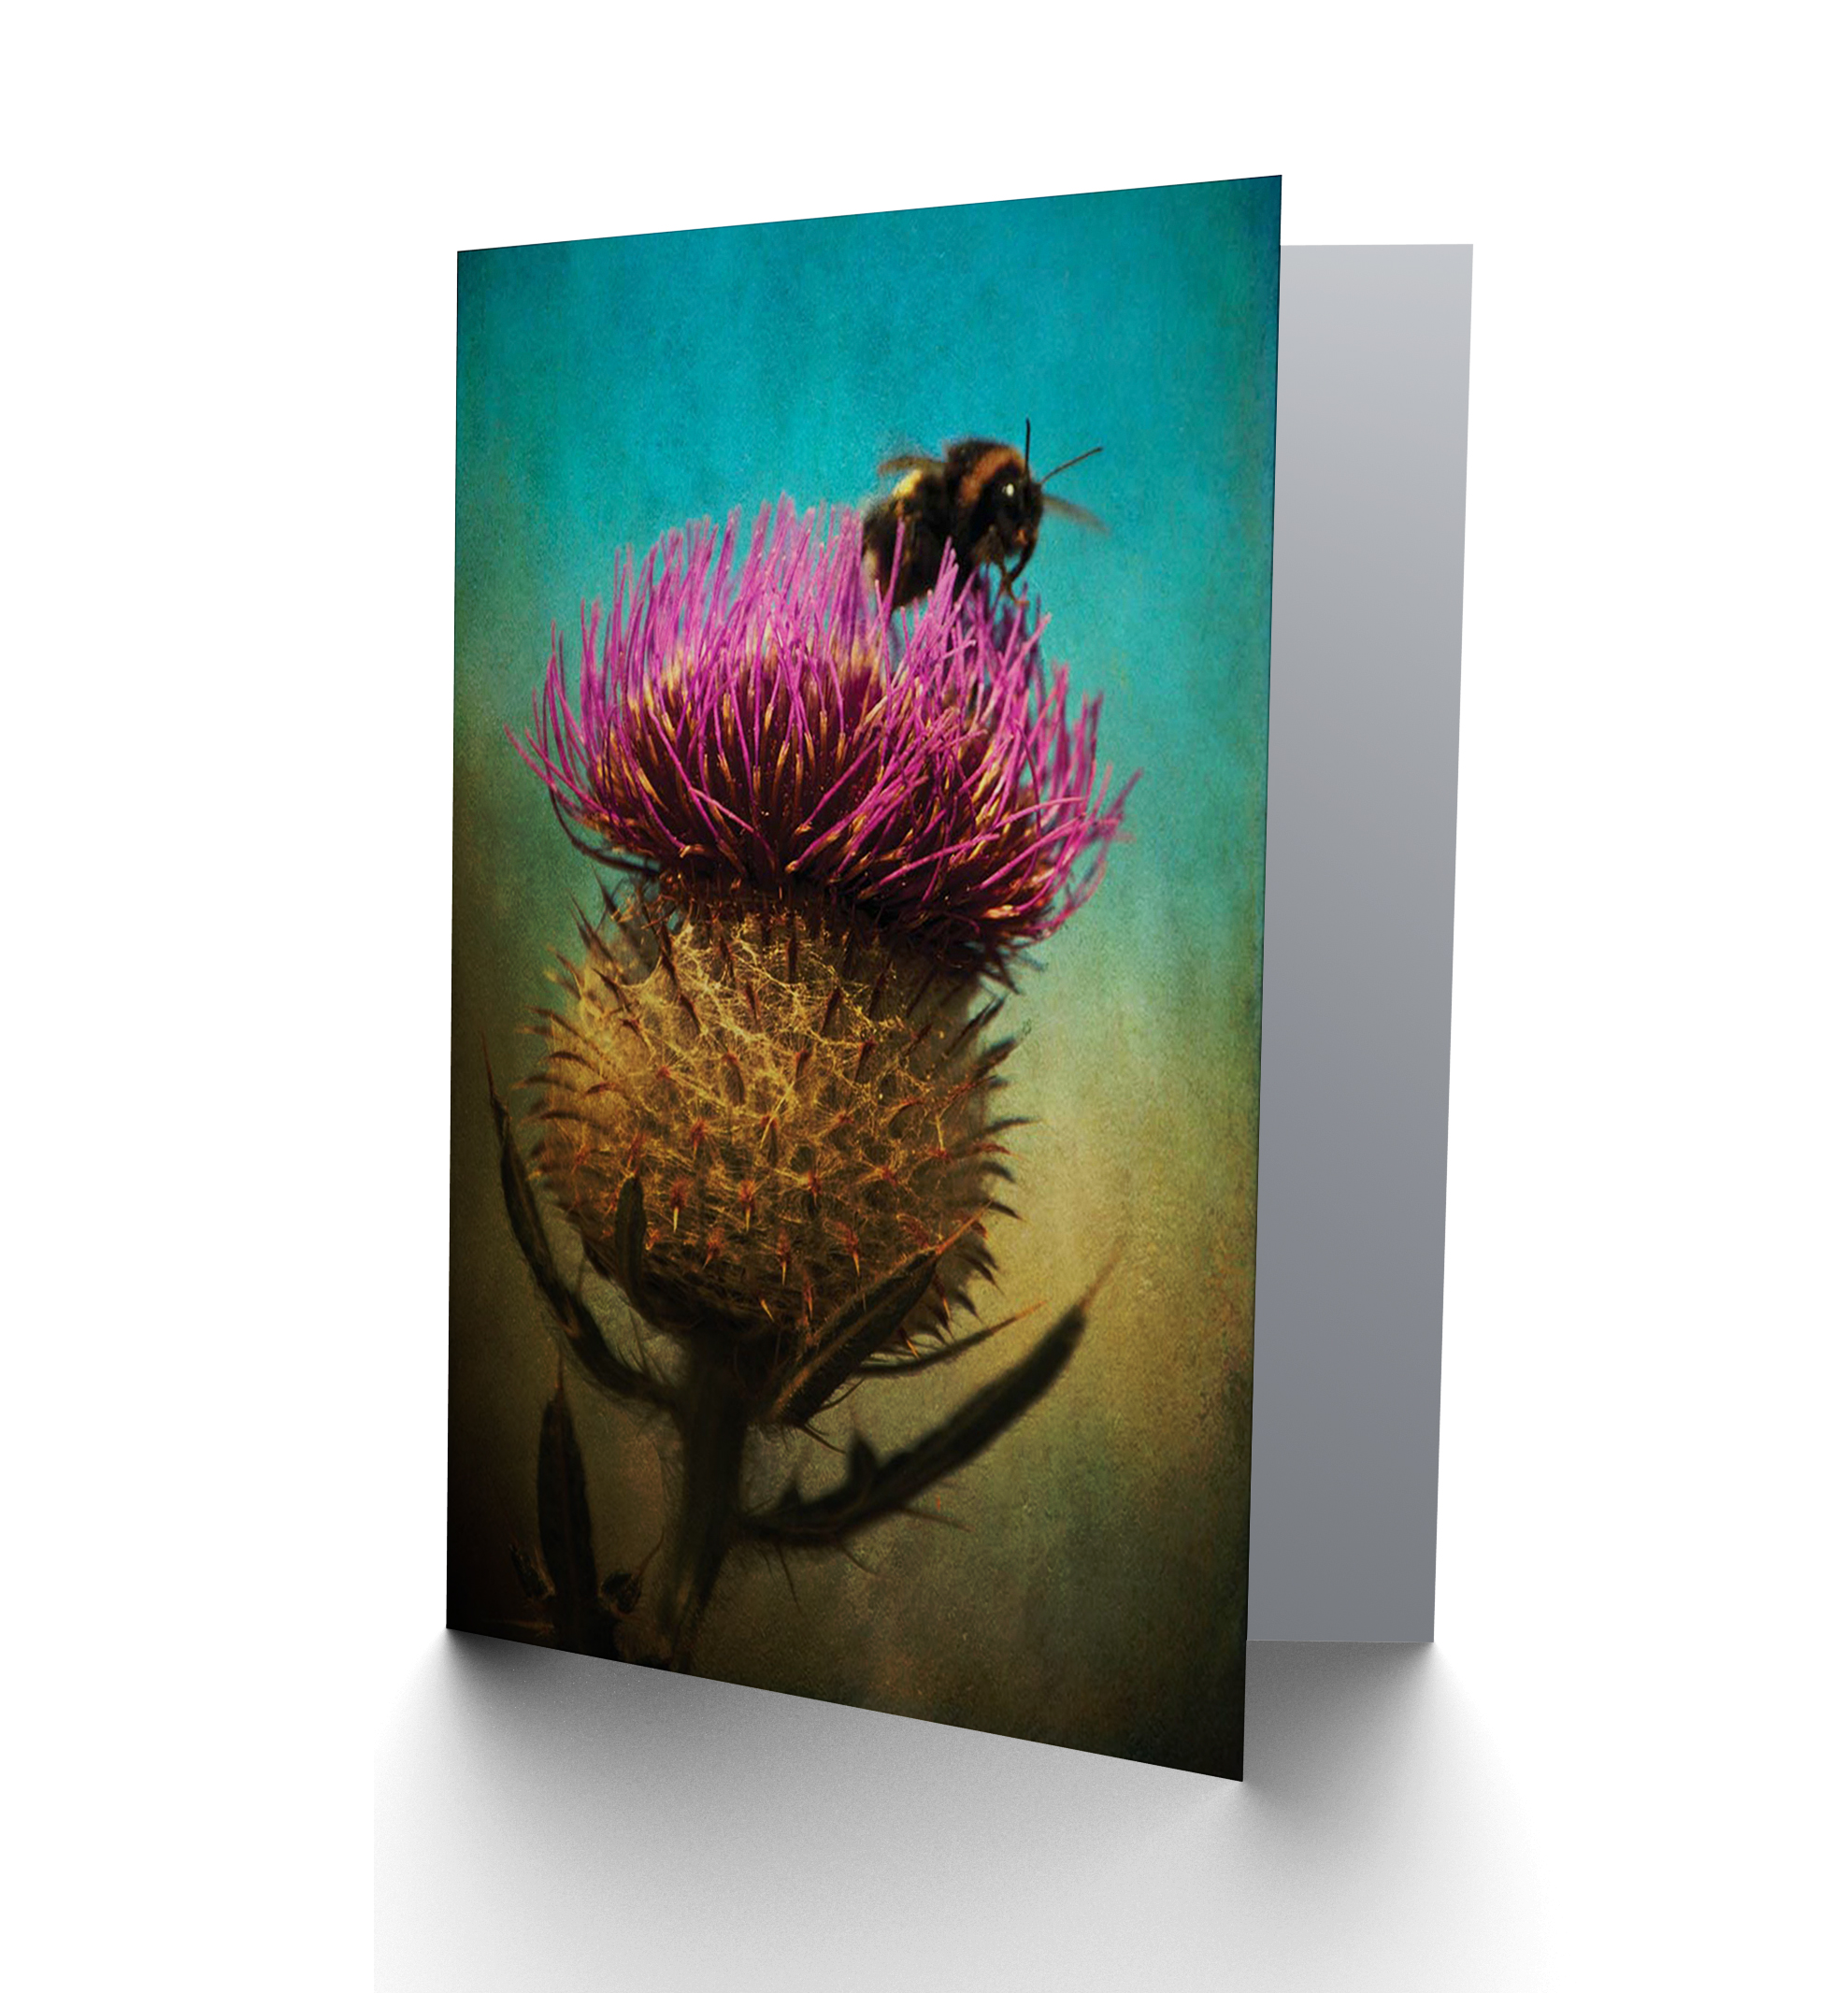 NEW THISTLE EDINBURGH SCOTLAND BUMBLE BEE GRUNGE BLANK